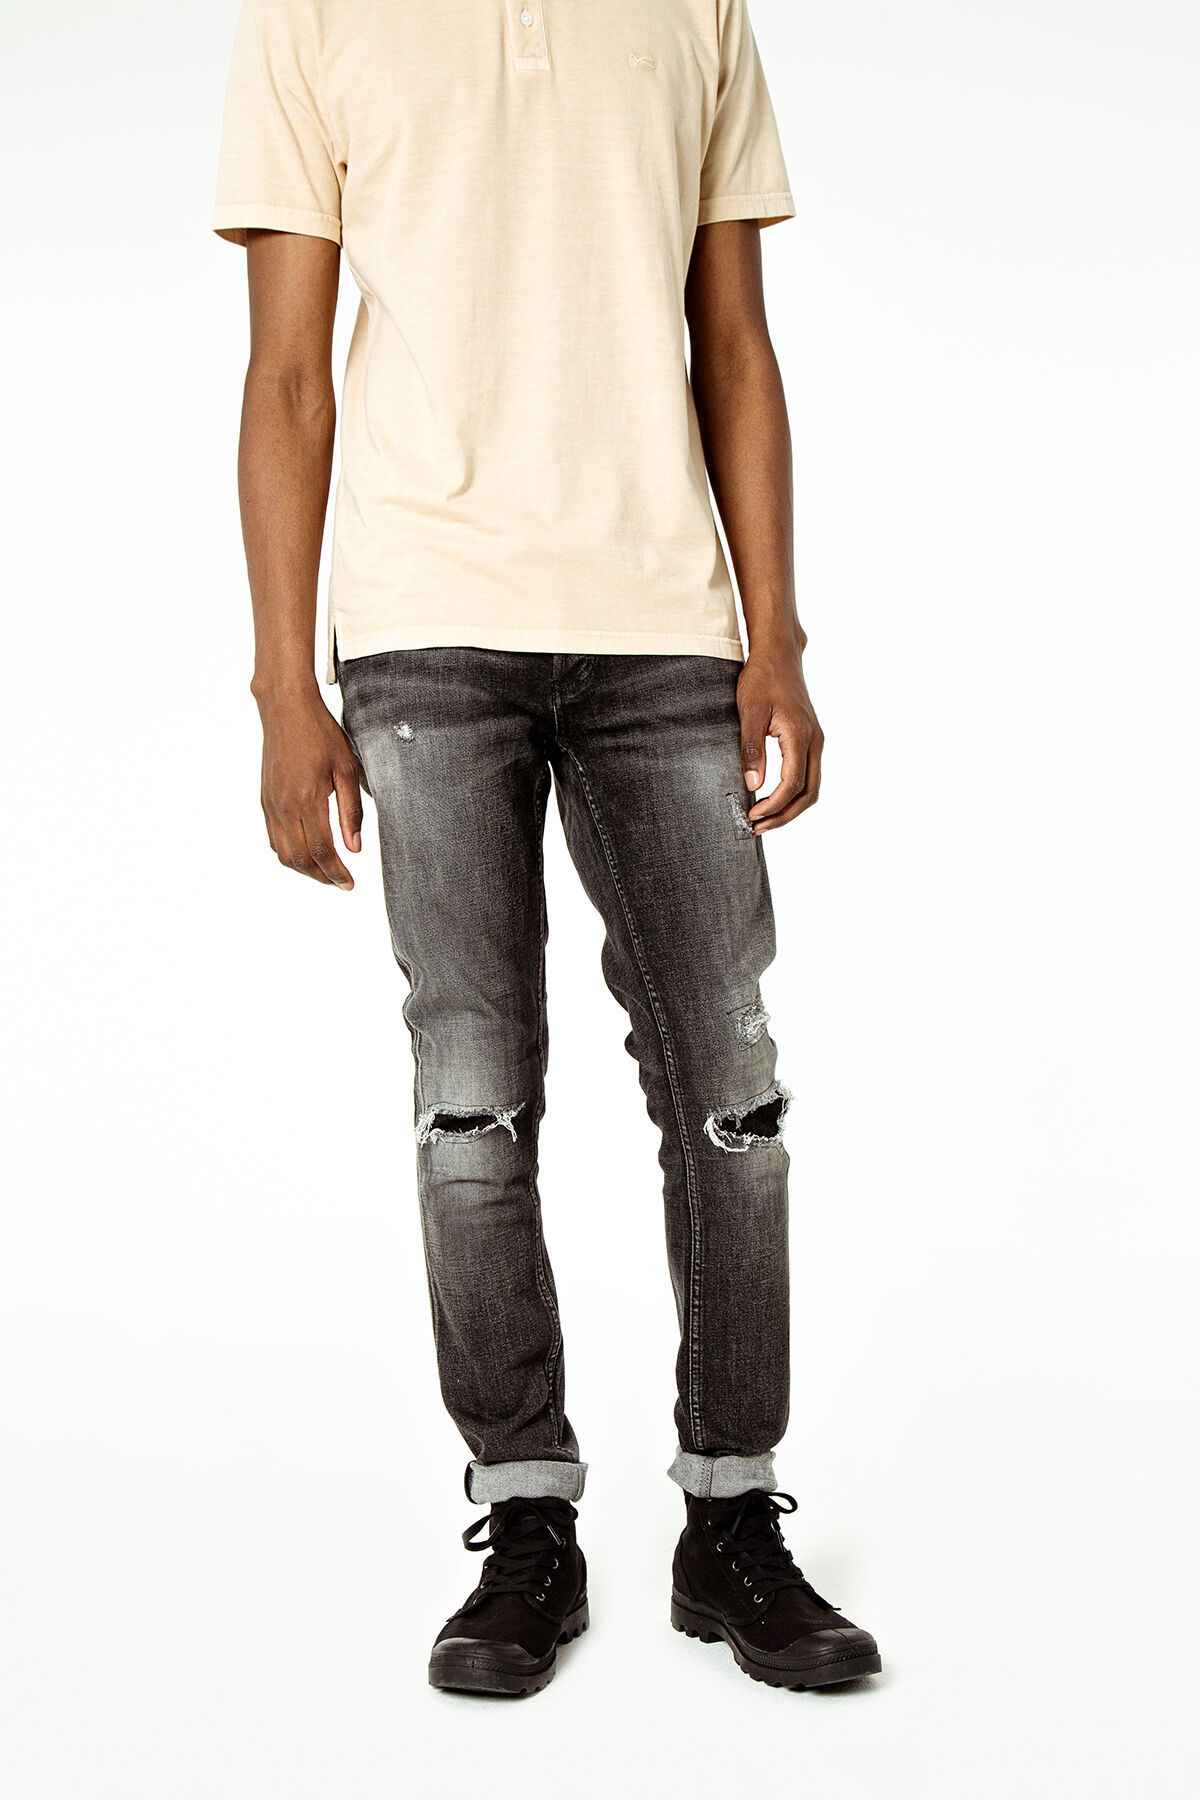 BOLT Left-hand, black weft denim - Skinny Fit